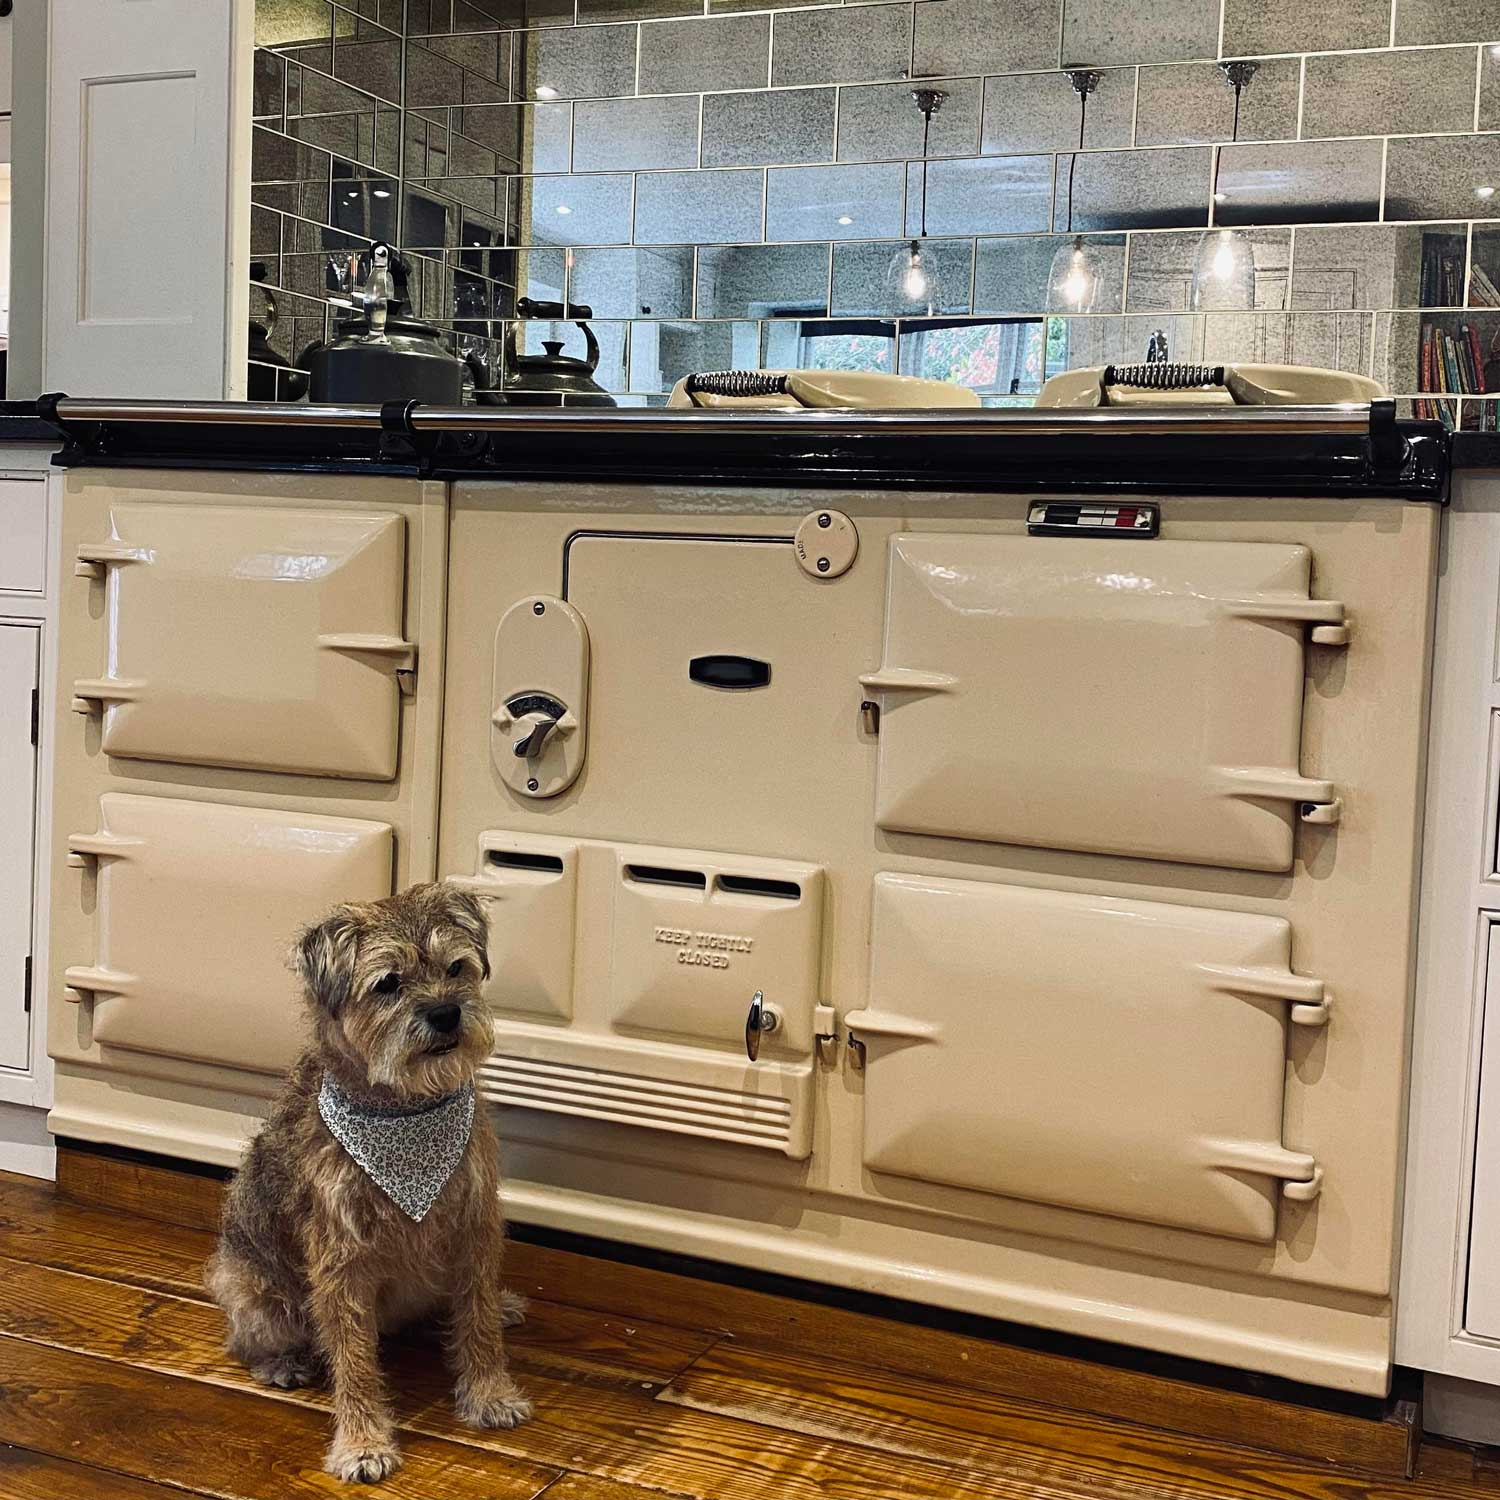 Dogs + Aga range cookers? Yes please!